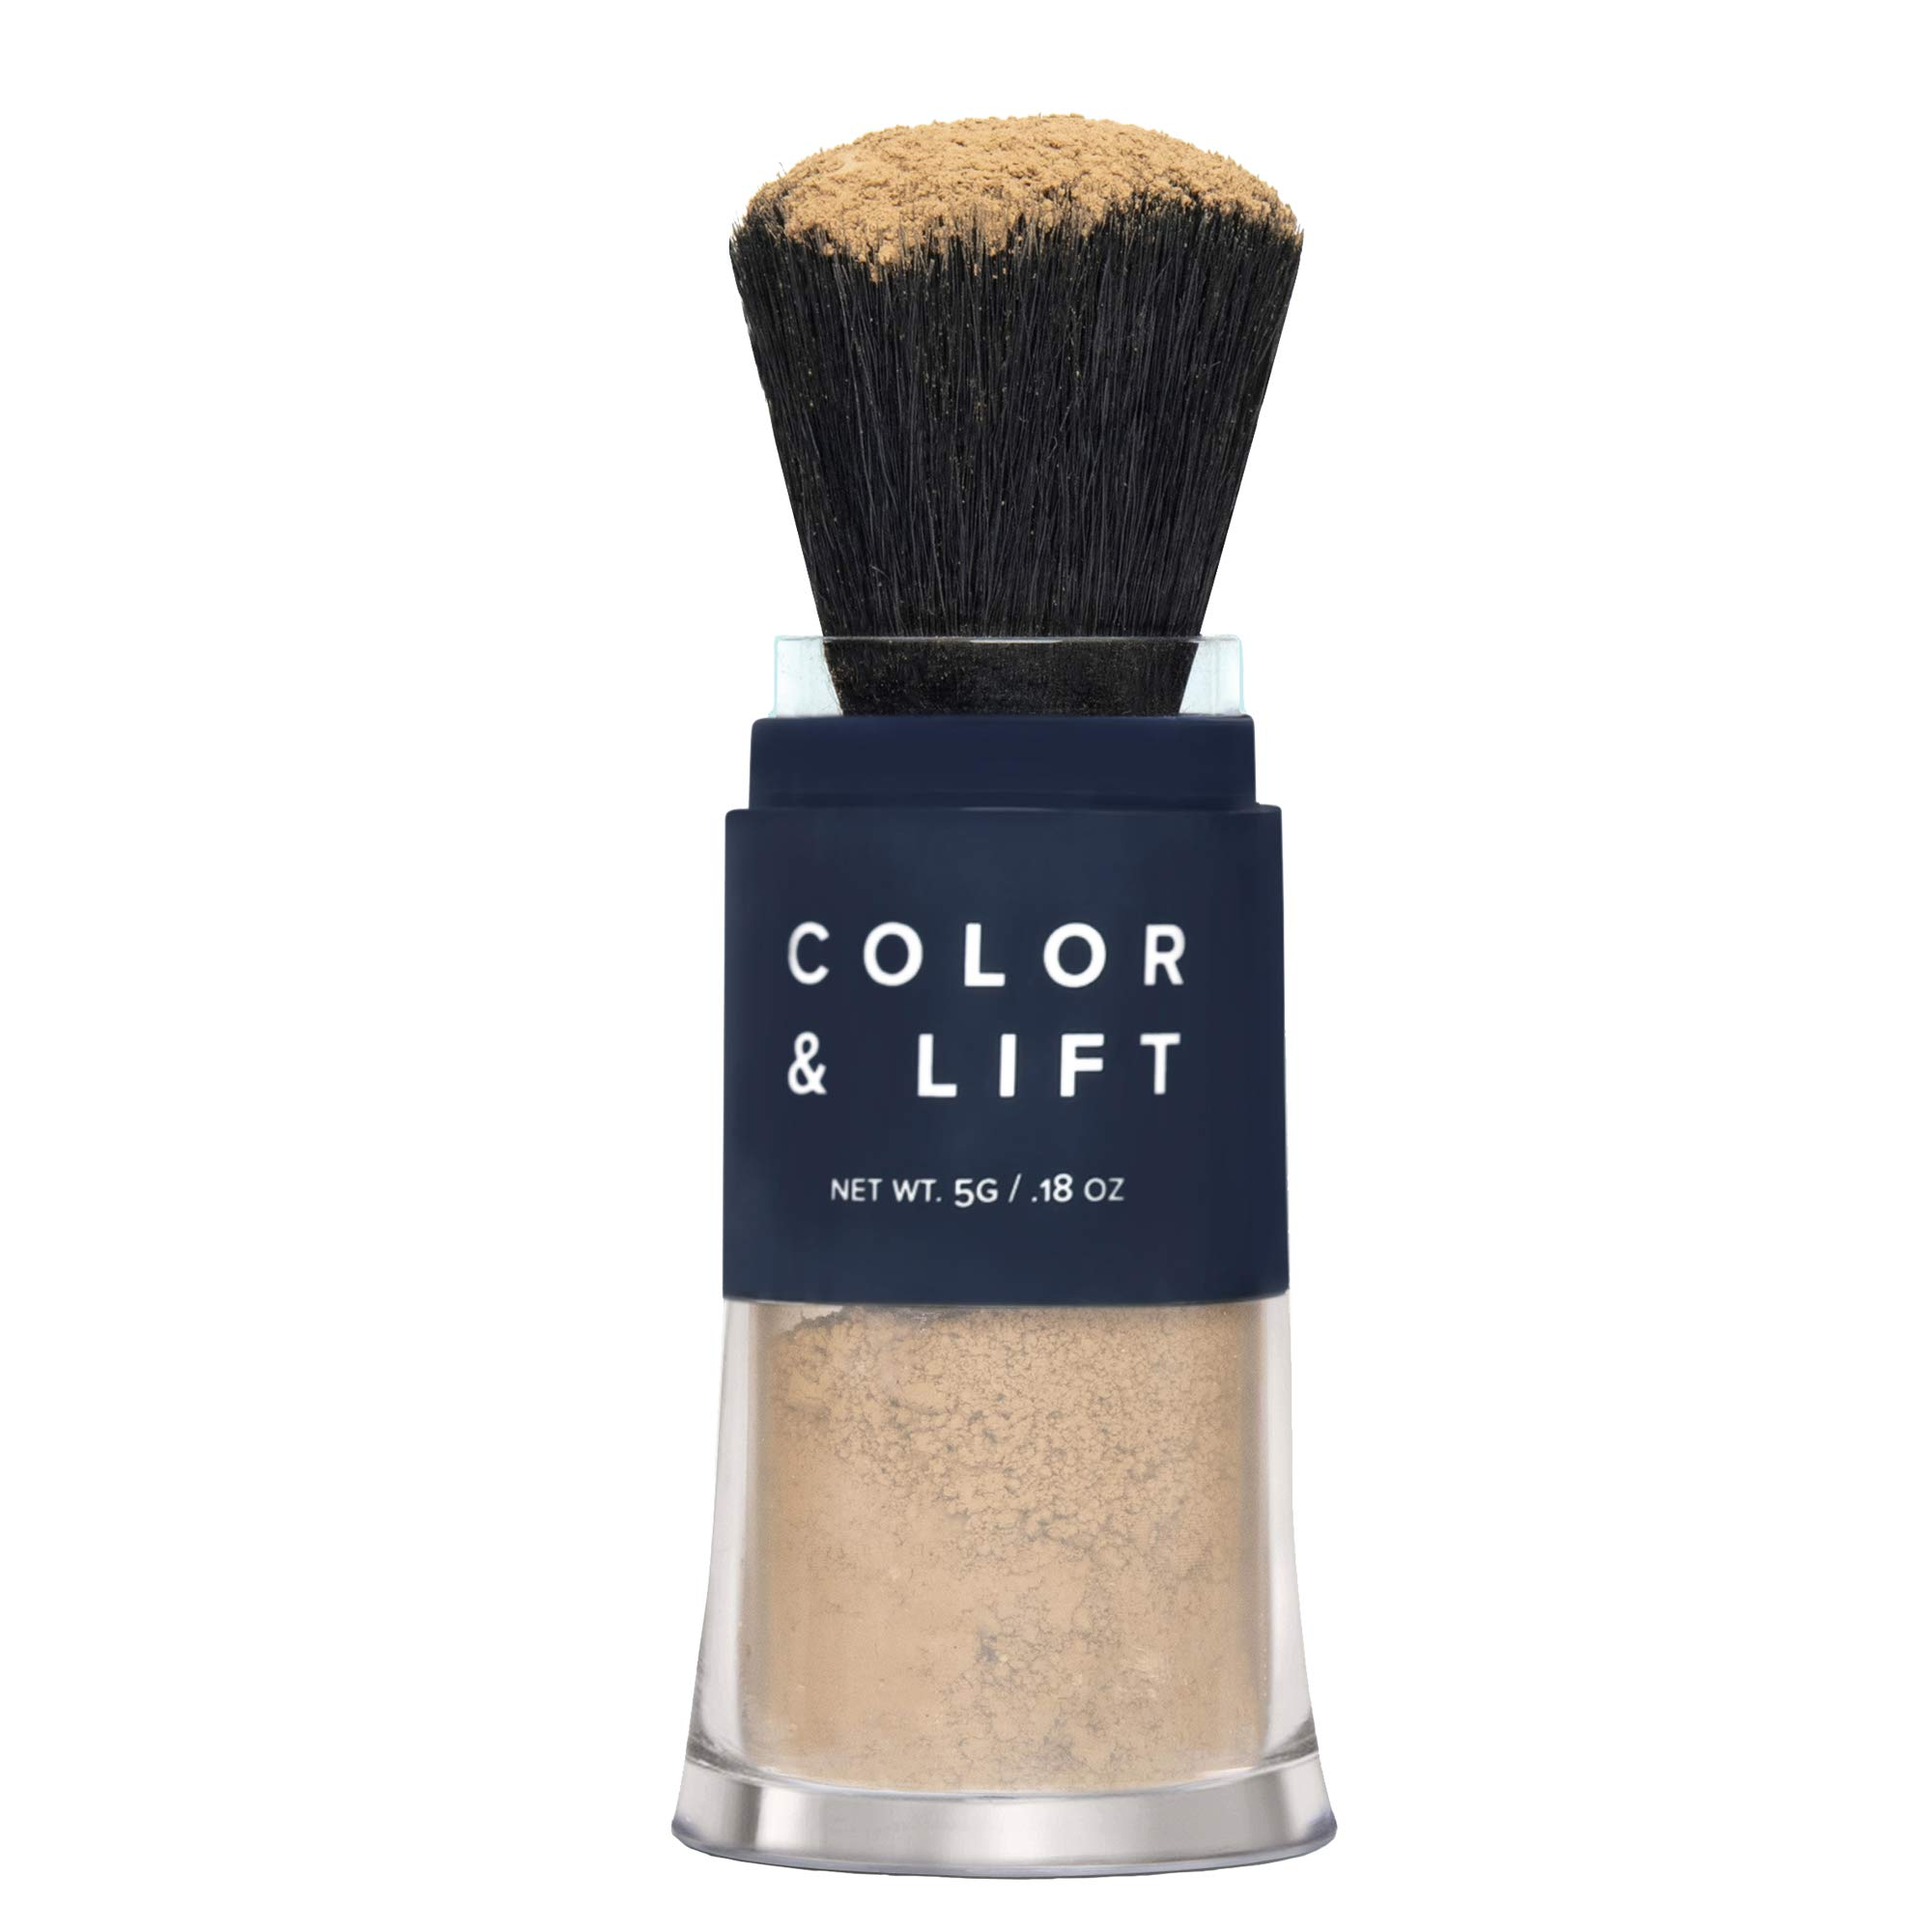 Color & Lift with Thickening Powder - Available in 8 Hair Colors - Root Cover Up - Temporary Hair Coloring Brush that Refreshes Hair - Light Brown by TRUHAIR by Chelsea Scott